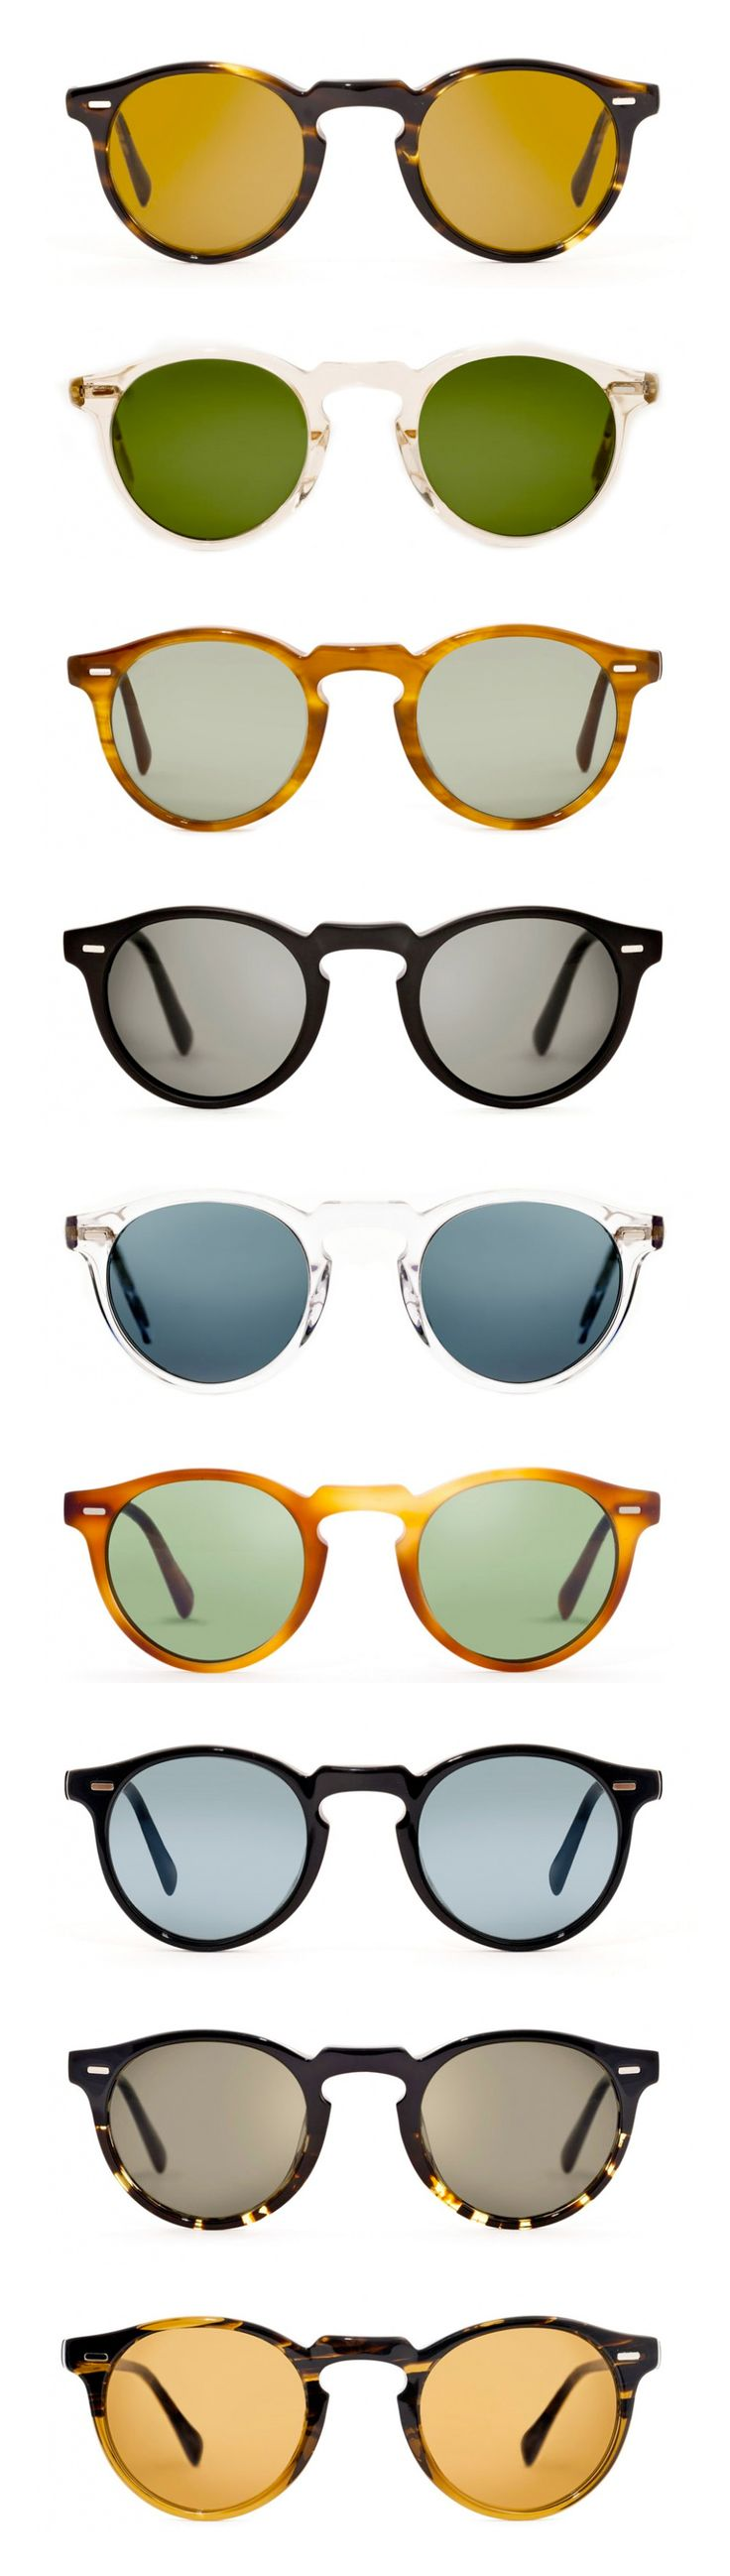 I LOVE Oliver Peoples....every since American Psycho I became (slightly) obsessed...